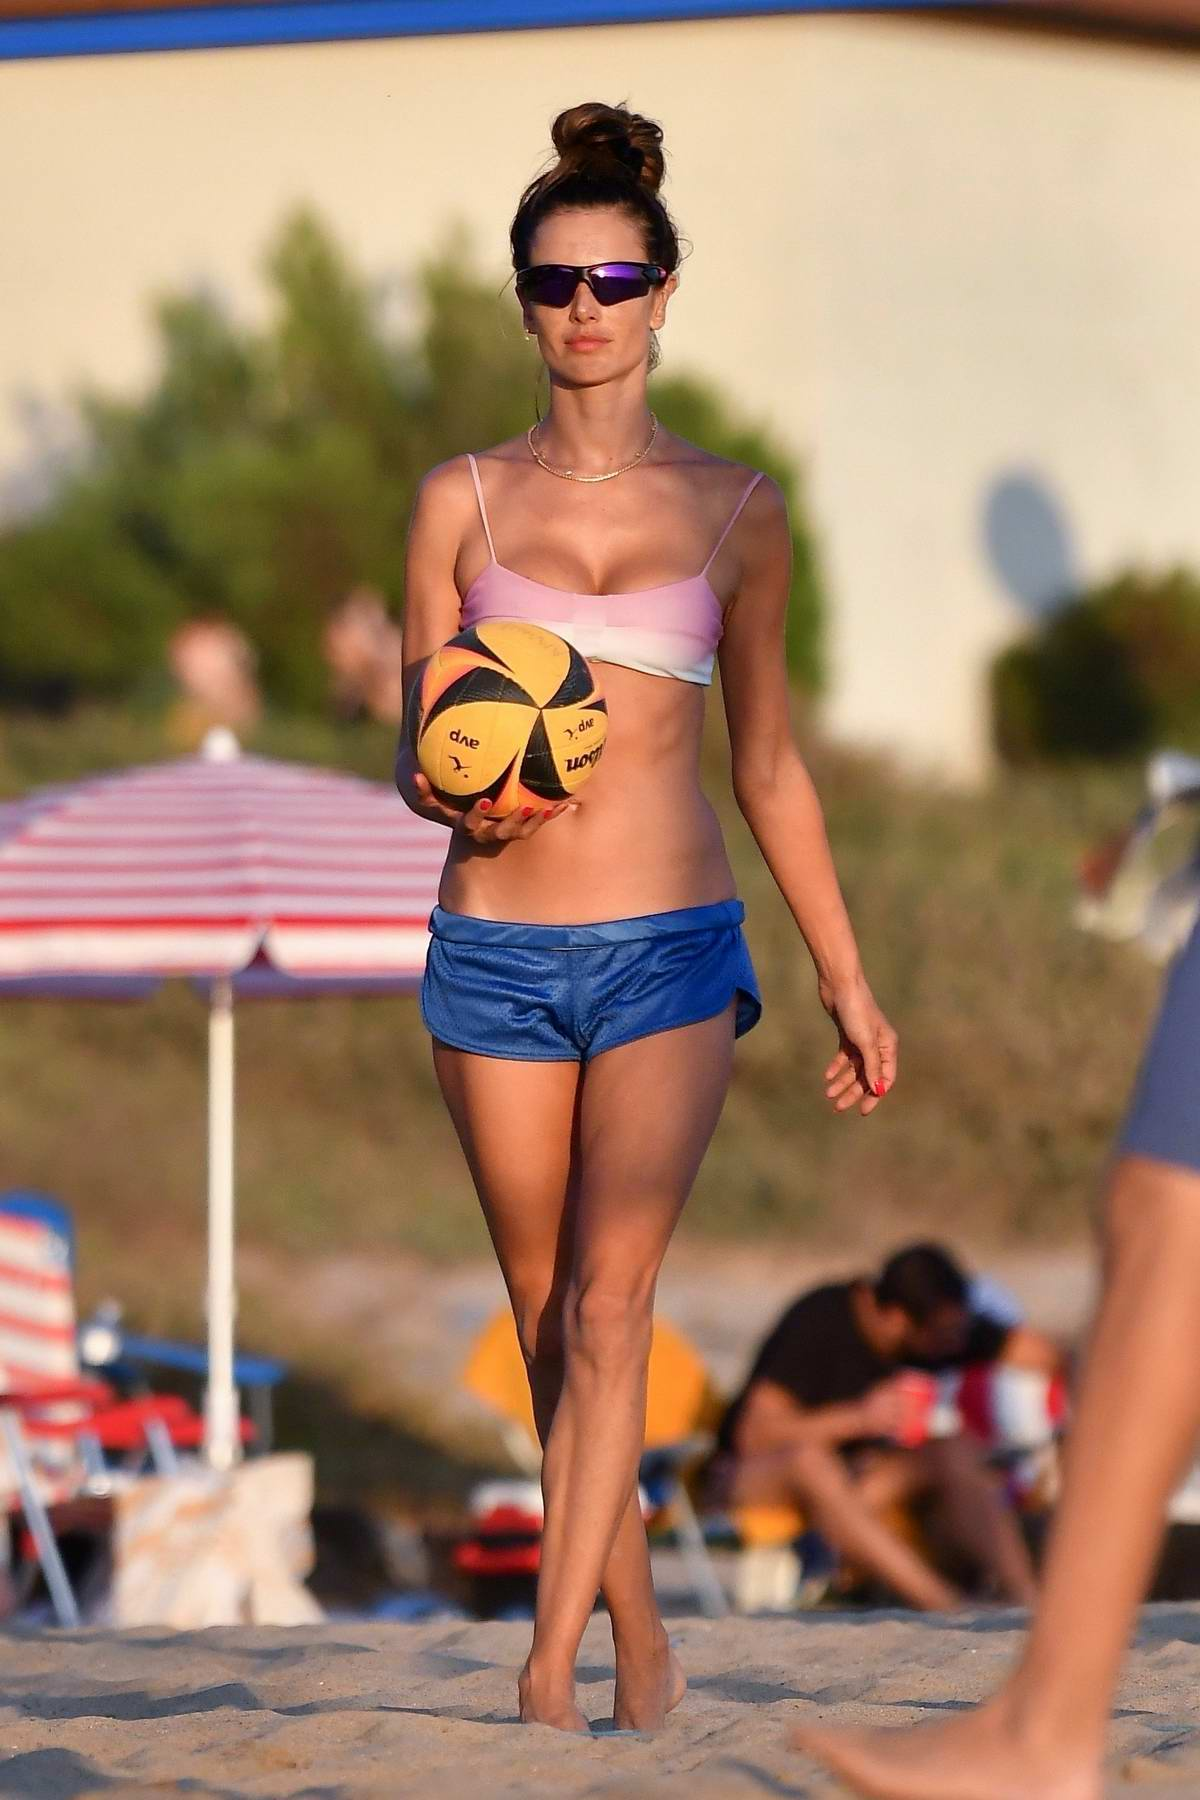 Alessandra Ambrosio flaunts her incredible figure during another day of beach volleyball with friends in Santa Monica, California